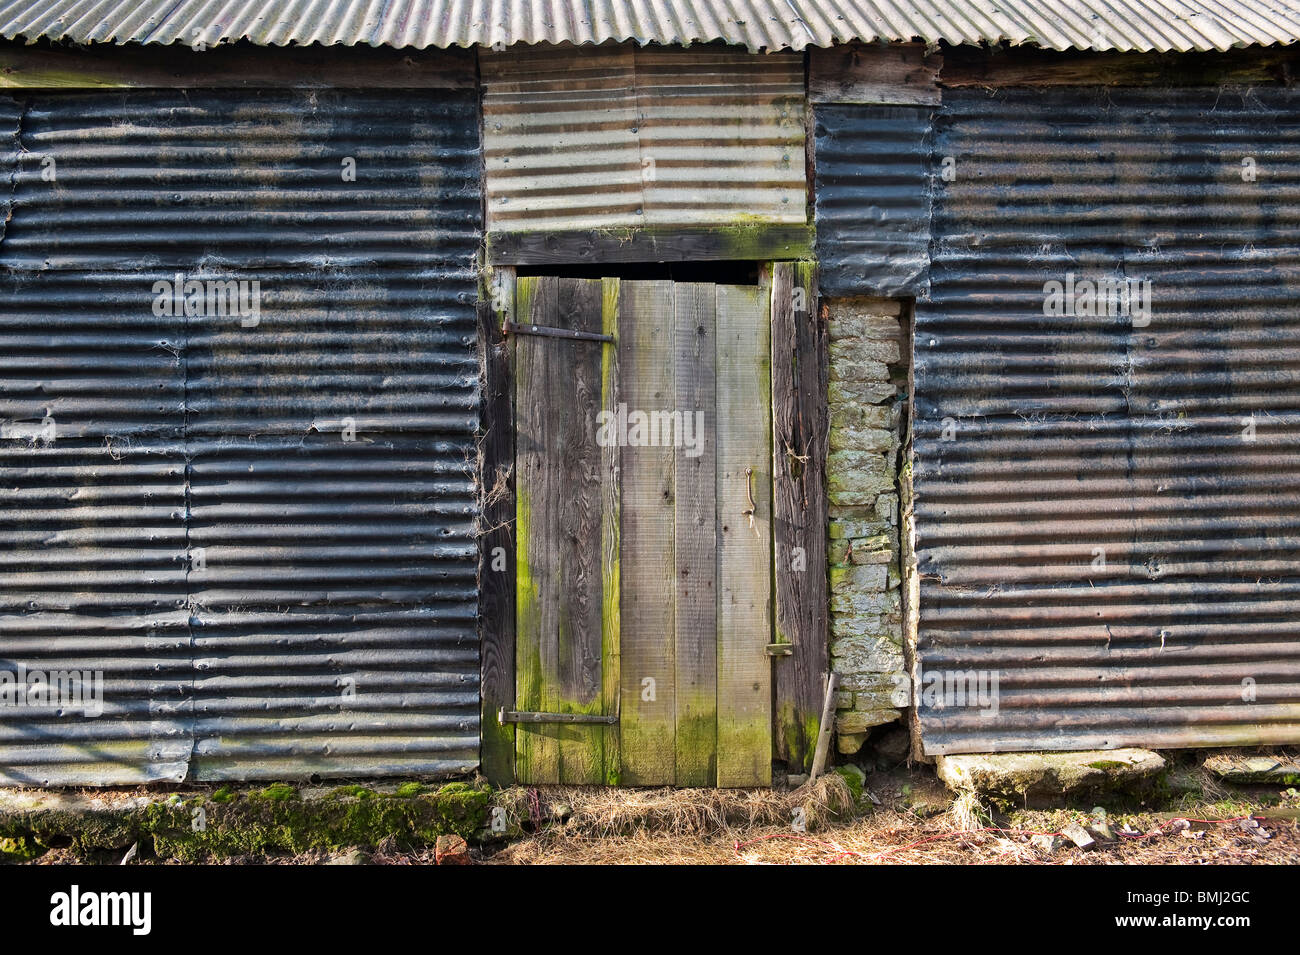 Old corrugated-iron barn with wooden door, Wales, UK - Stock Image